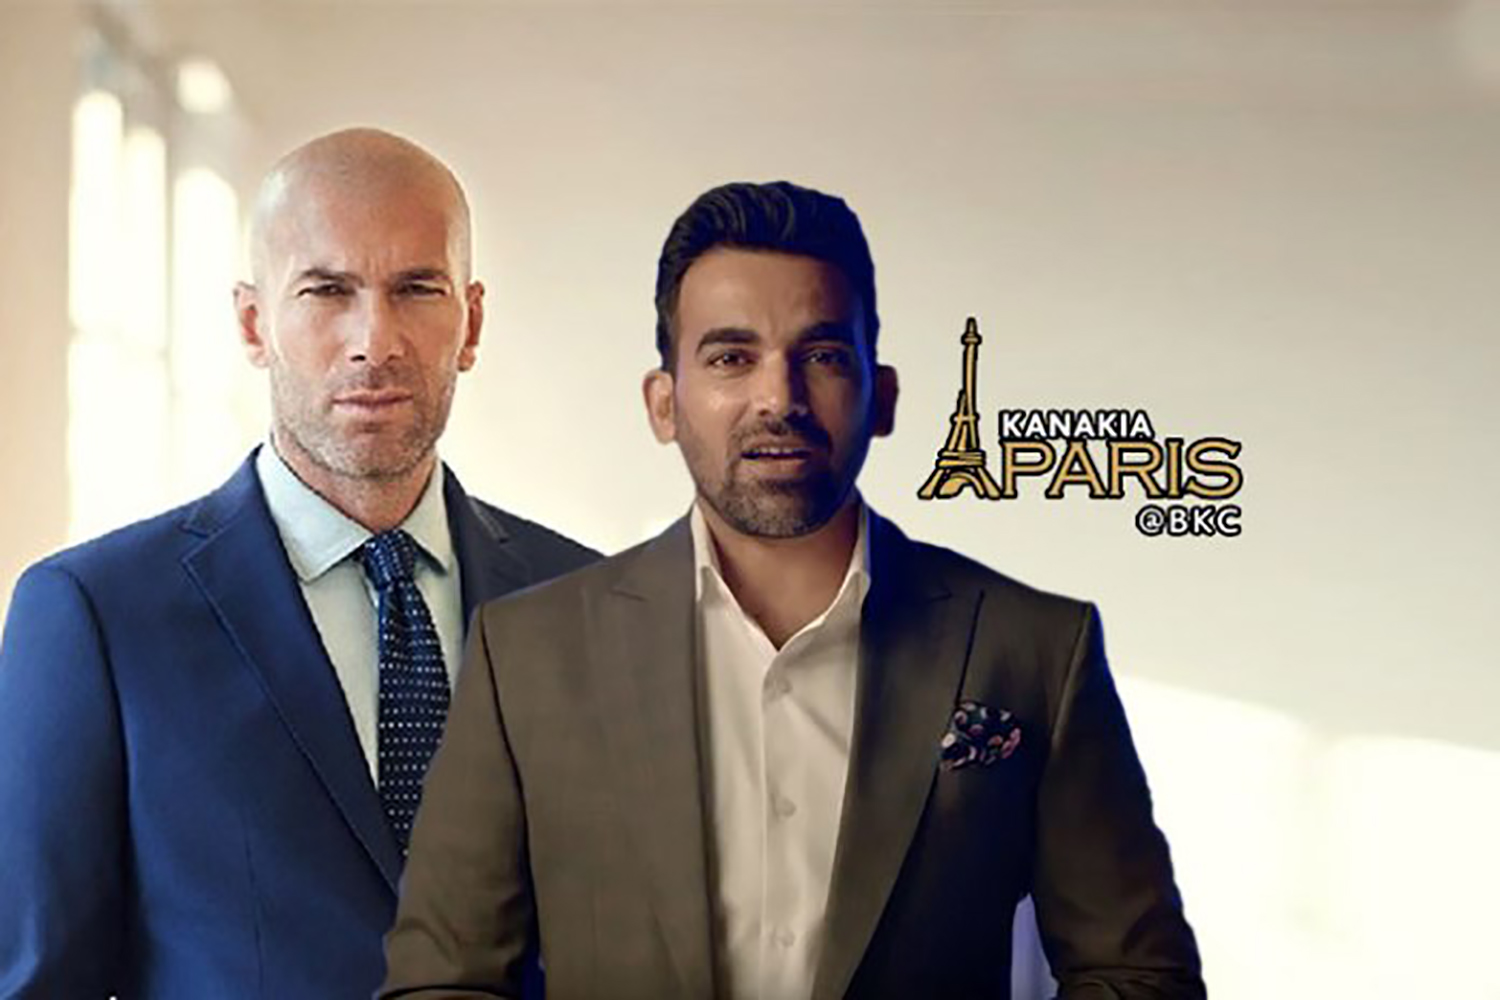 Zidane, Zaheer shoots for promotional video